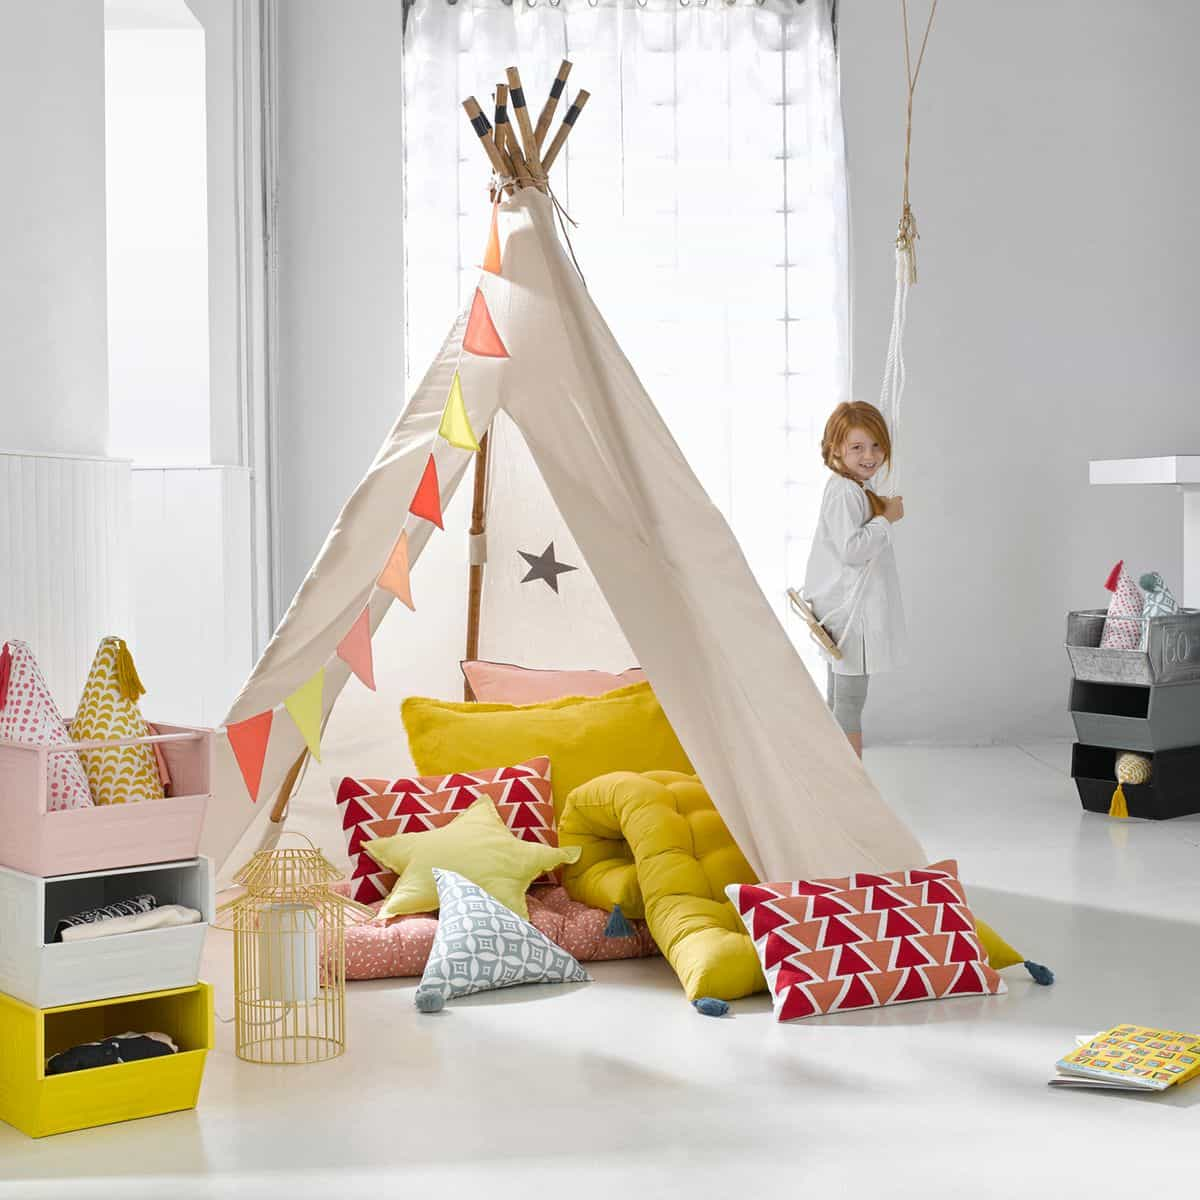 mon prochain diy le tipi enfant inspirations et tutos blog d co. Black Bedroom Furniture Sets. Home Design Ideas